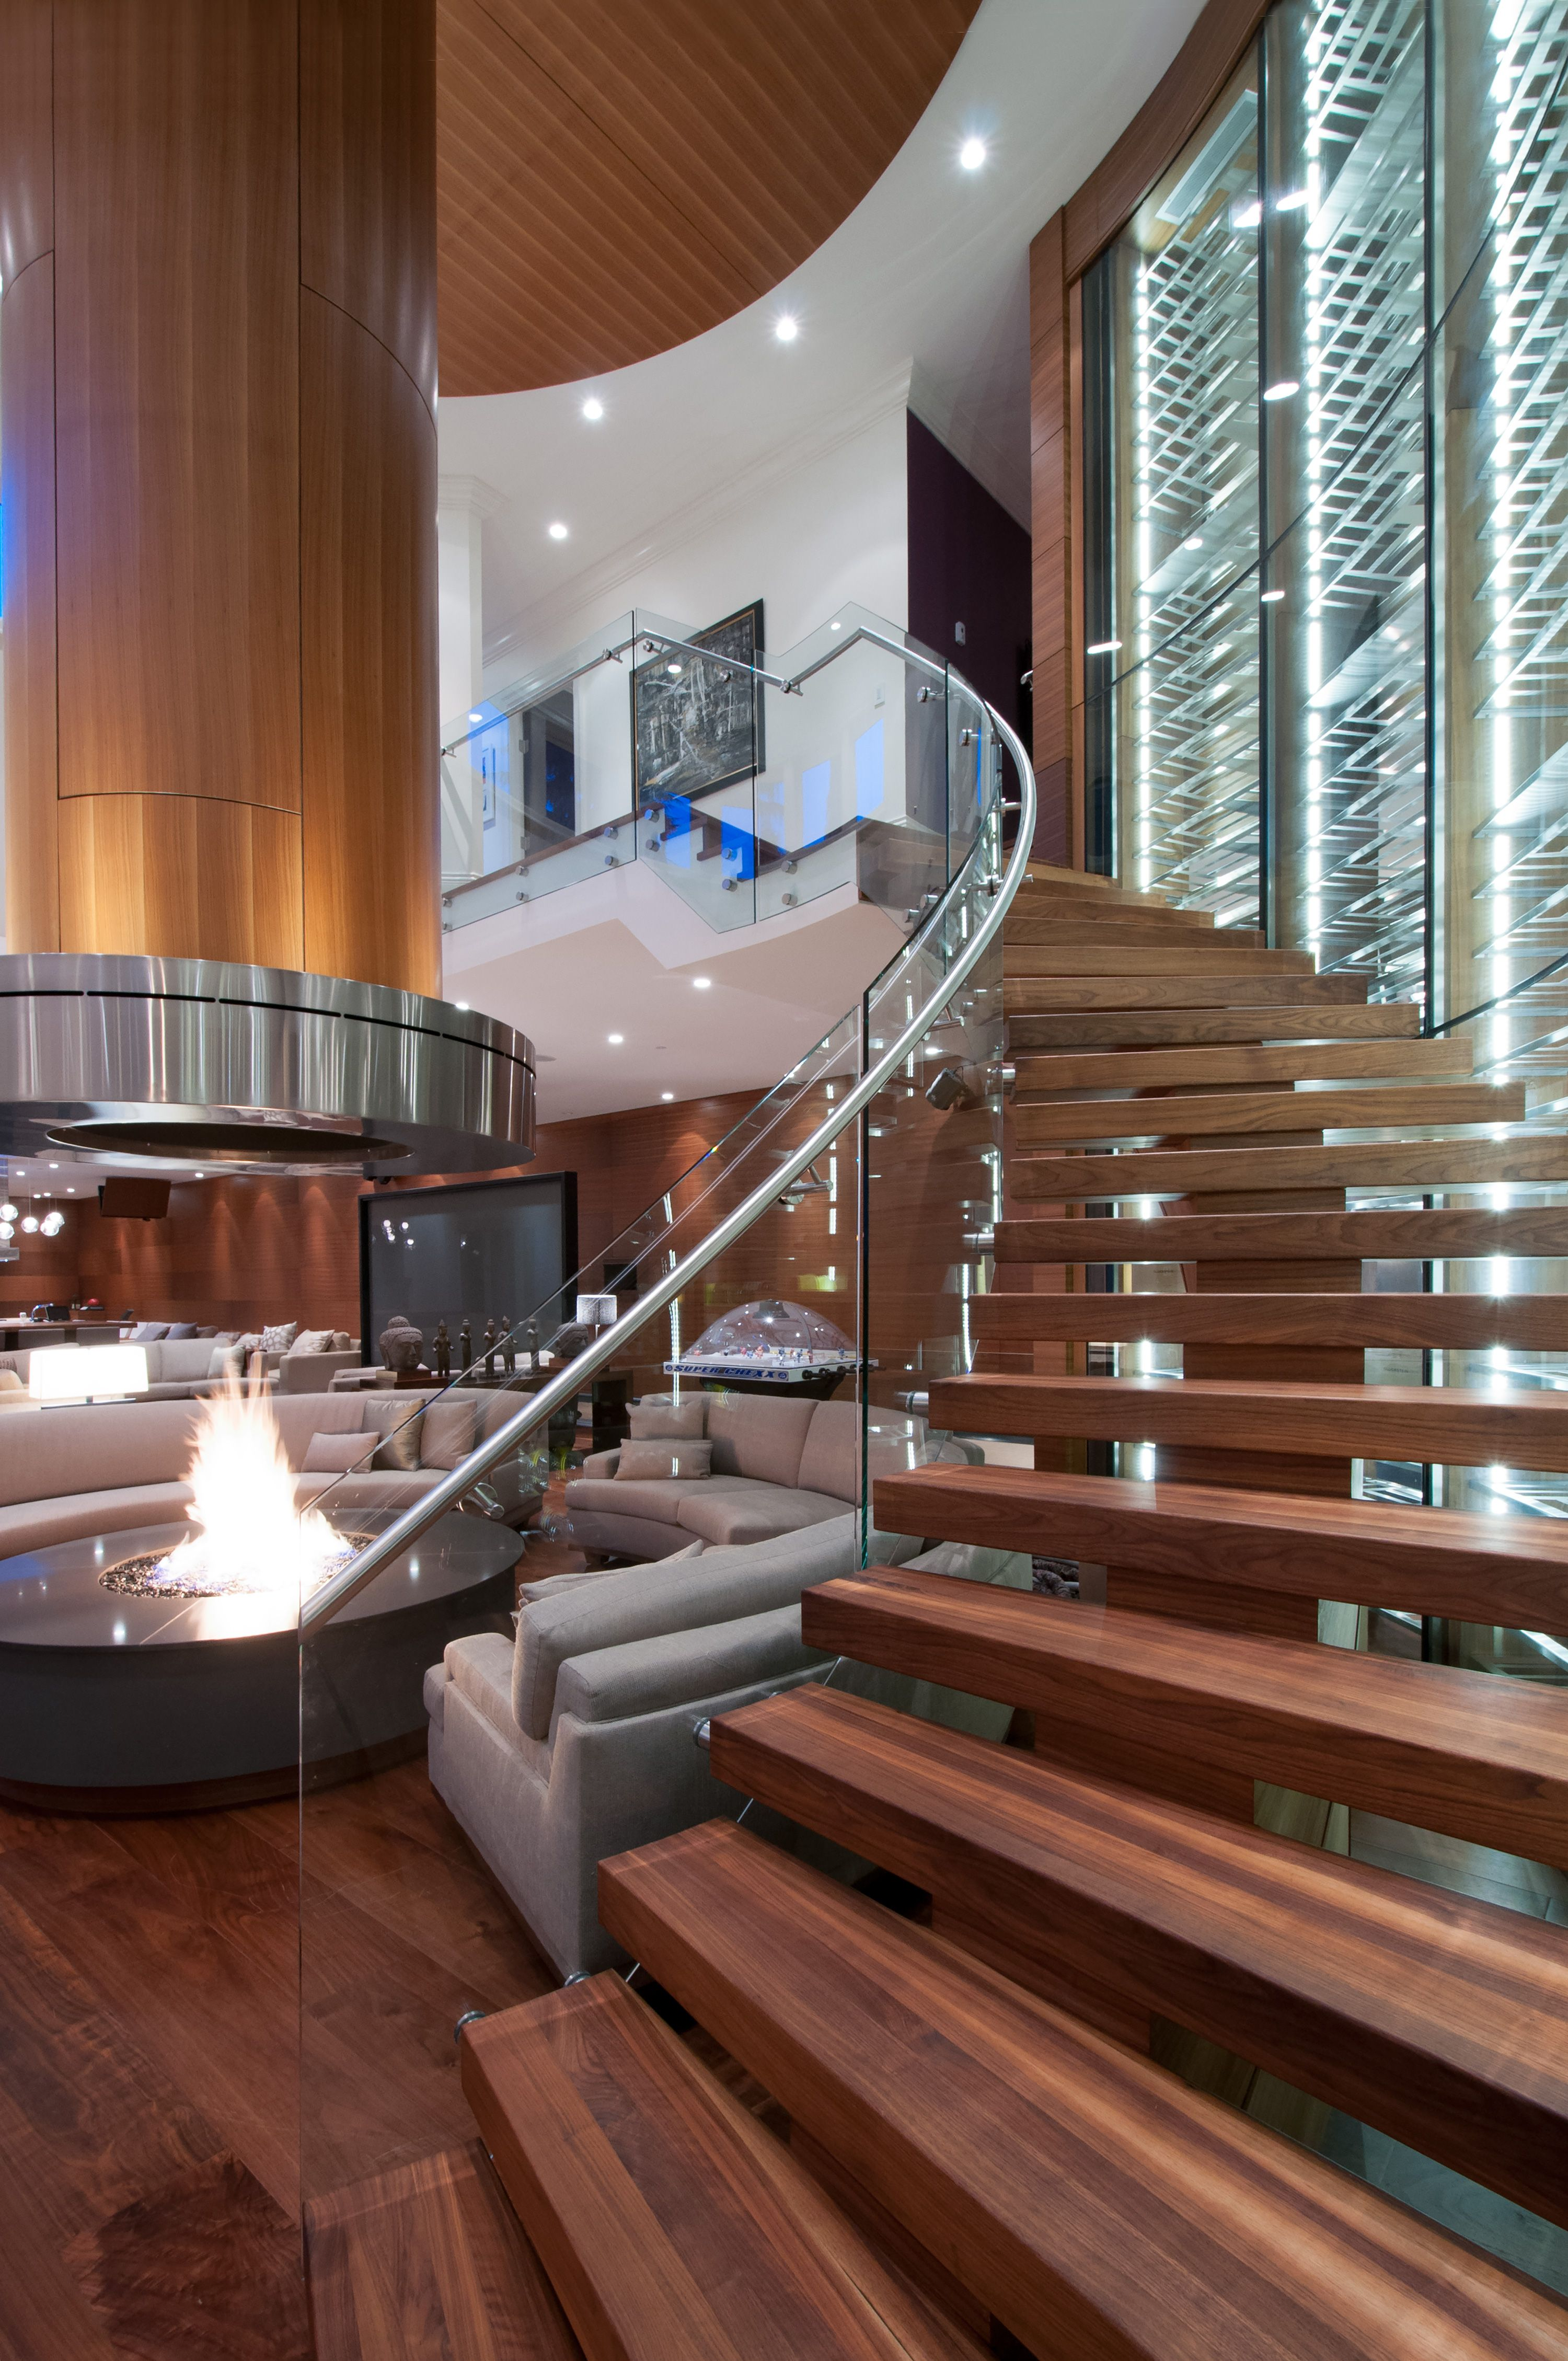 Best Curved Staircase Around Indoor Firepit With A 3000 Bottle 400 x 300